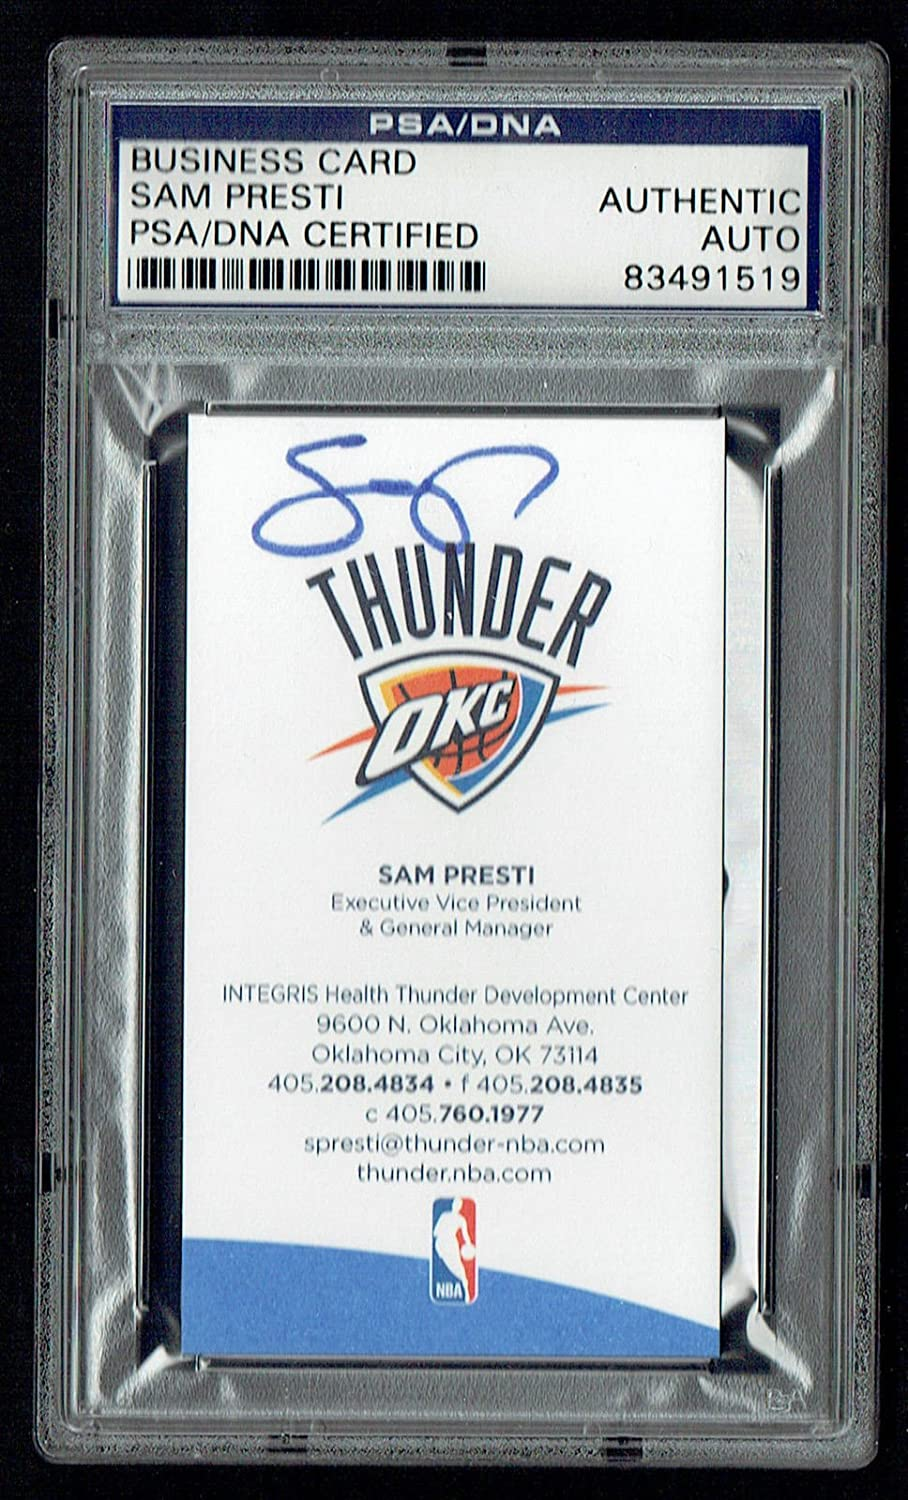 Sam presti signed autograph auto business card oklahoma thunder gm sam presti signed autograph auto business card oklahoma thunder gm psa slabbed at amazons sports collectibles store magicingreecefo Images